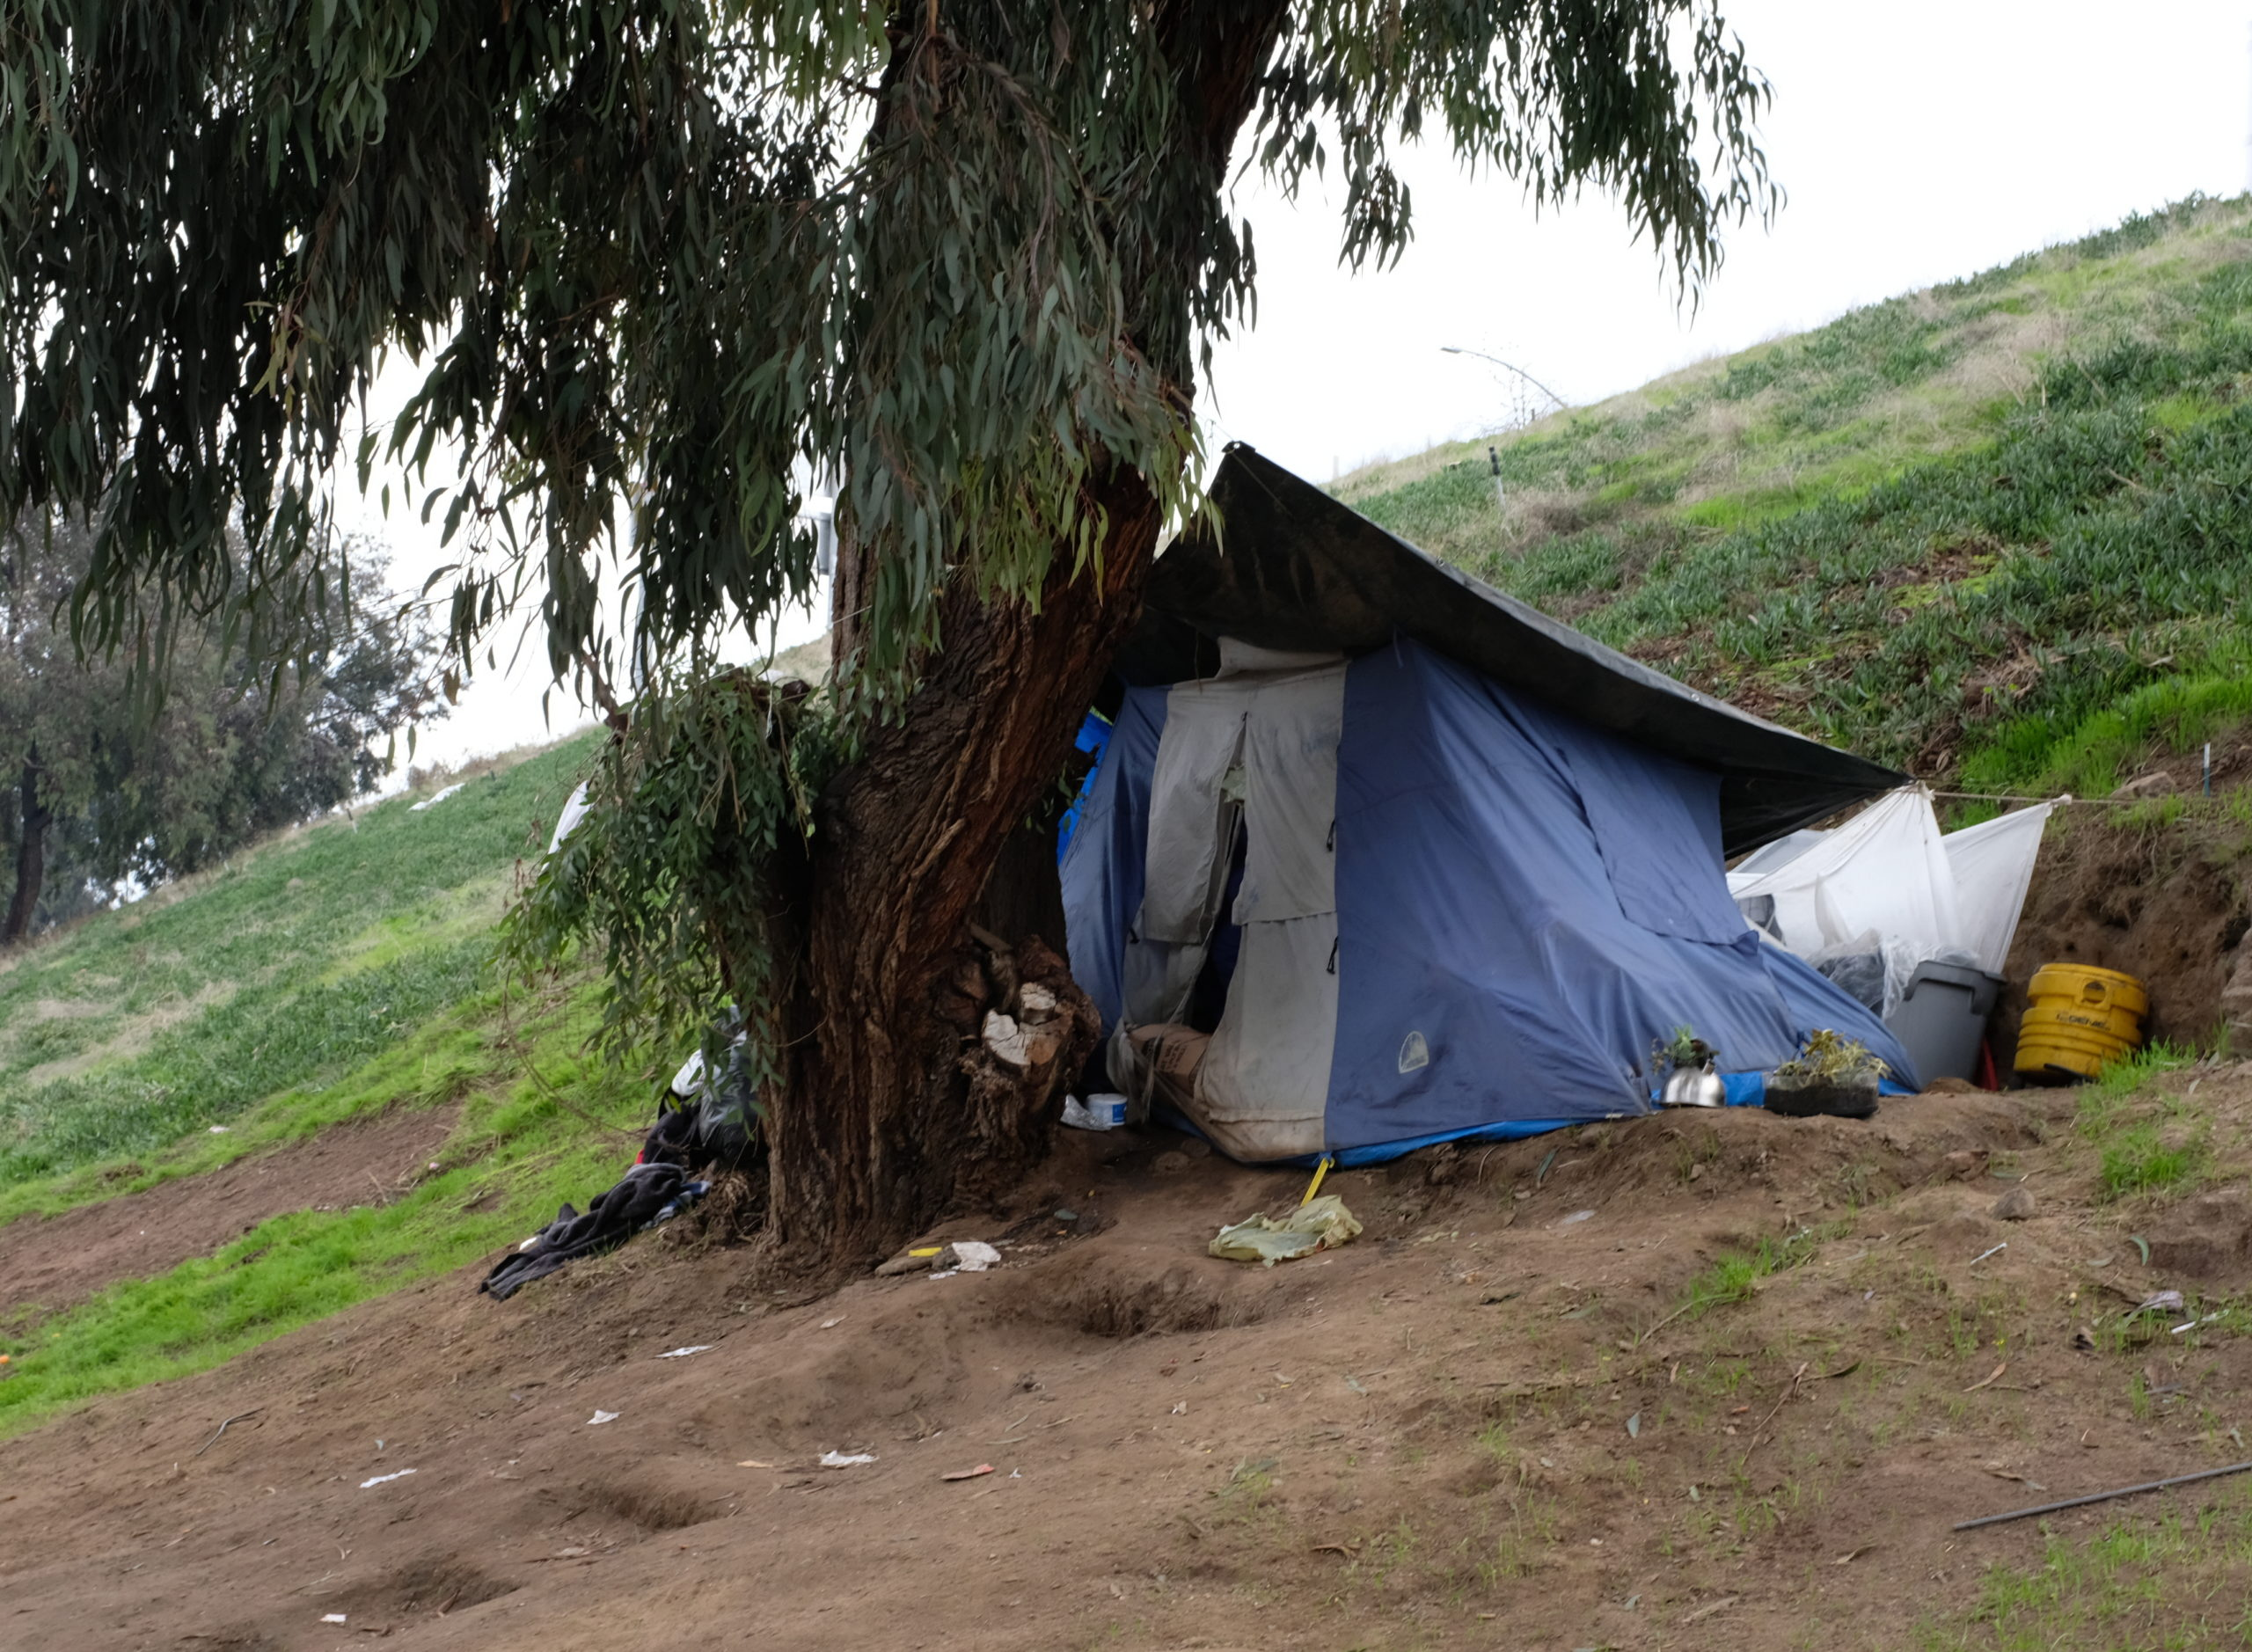 Newsom faces facts: Time to set up the tents